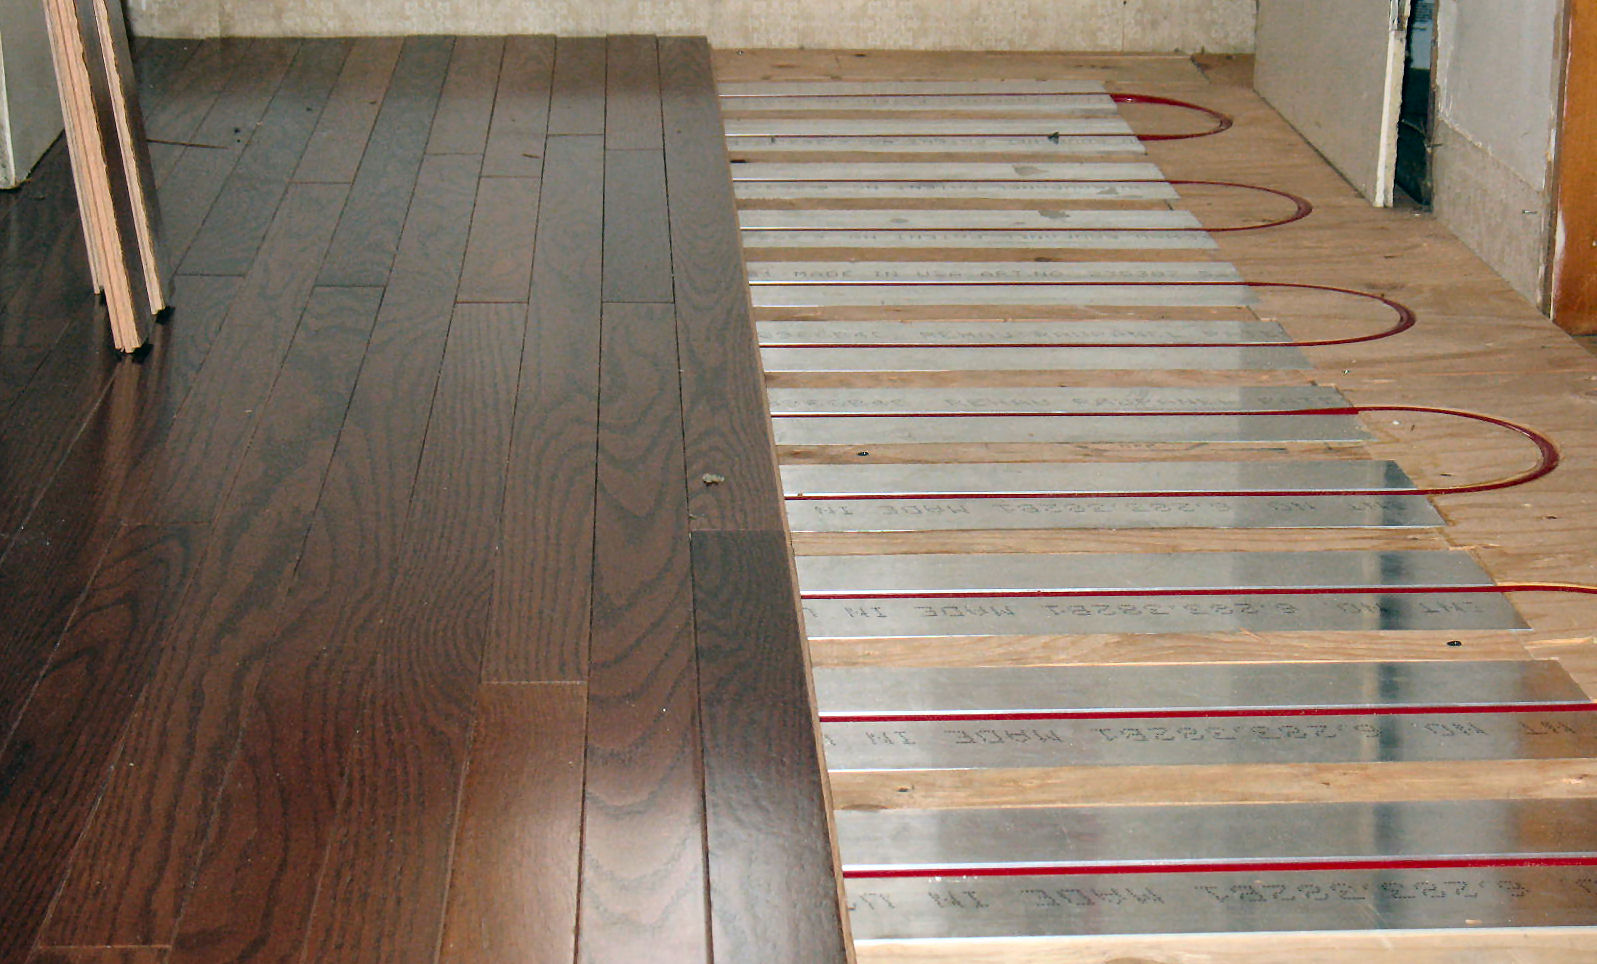 installing a radiant heat system - Radiant Floor Heating